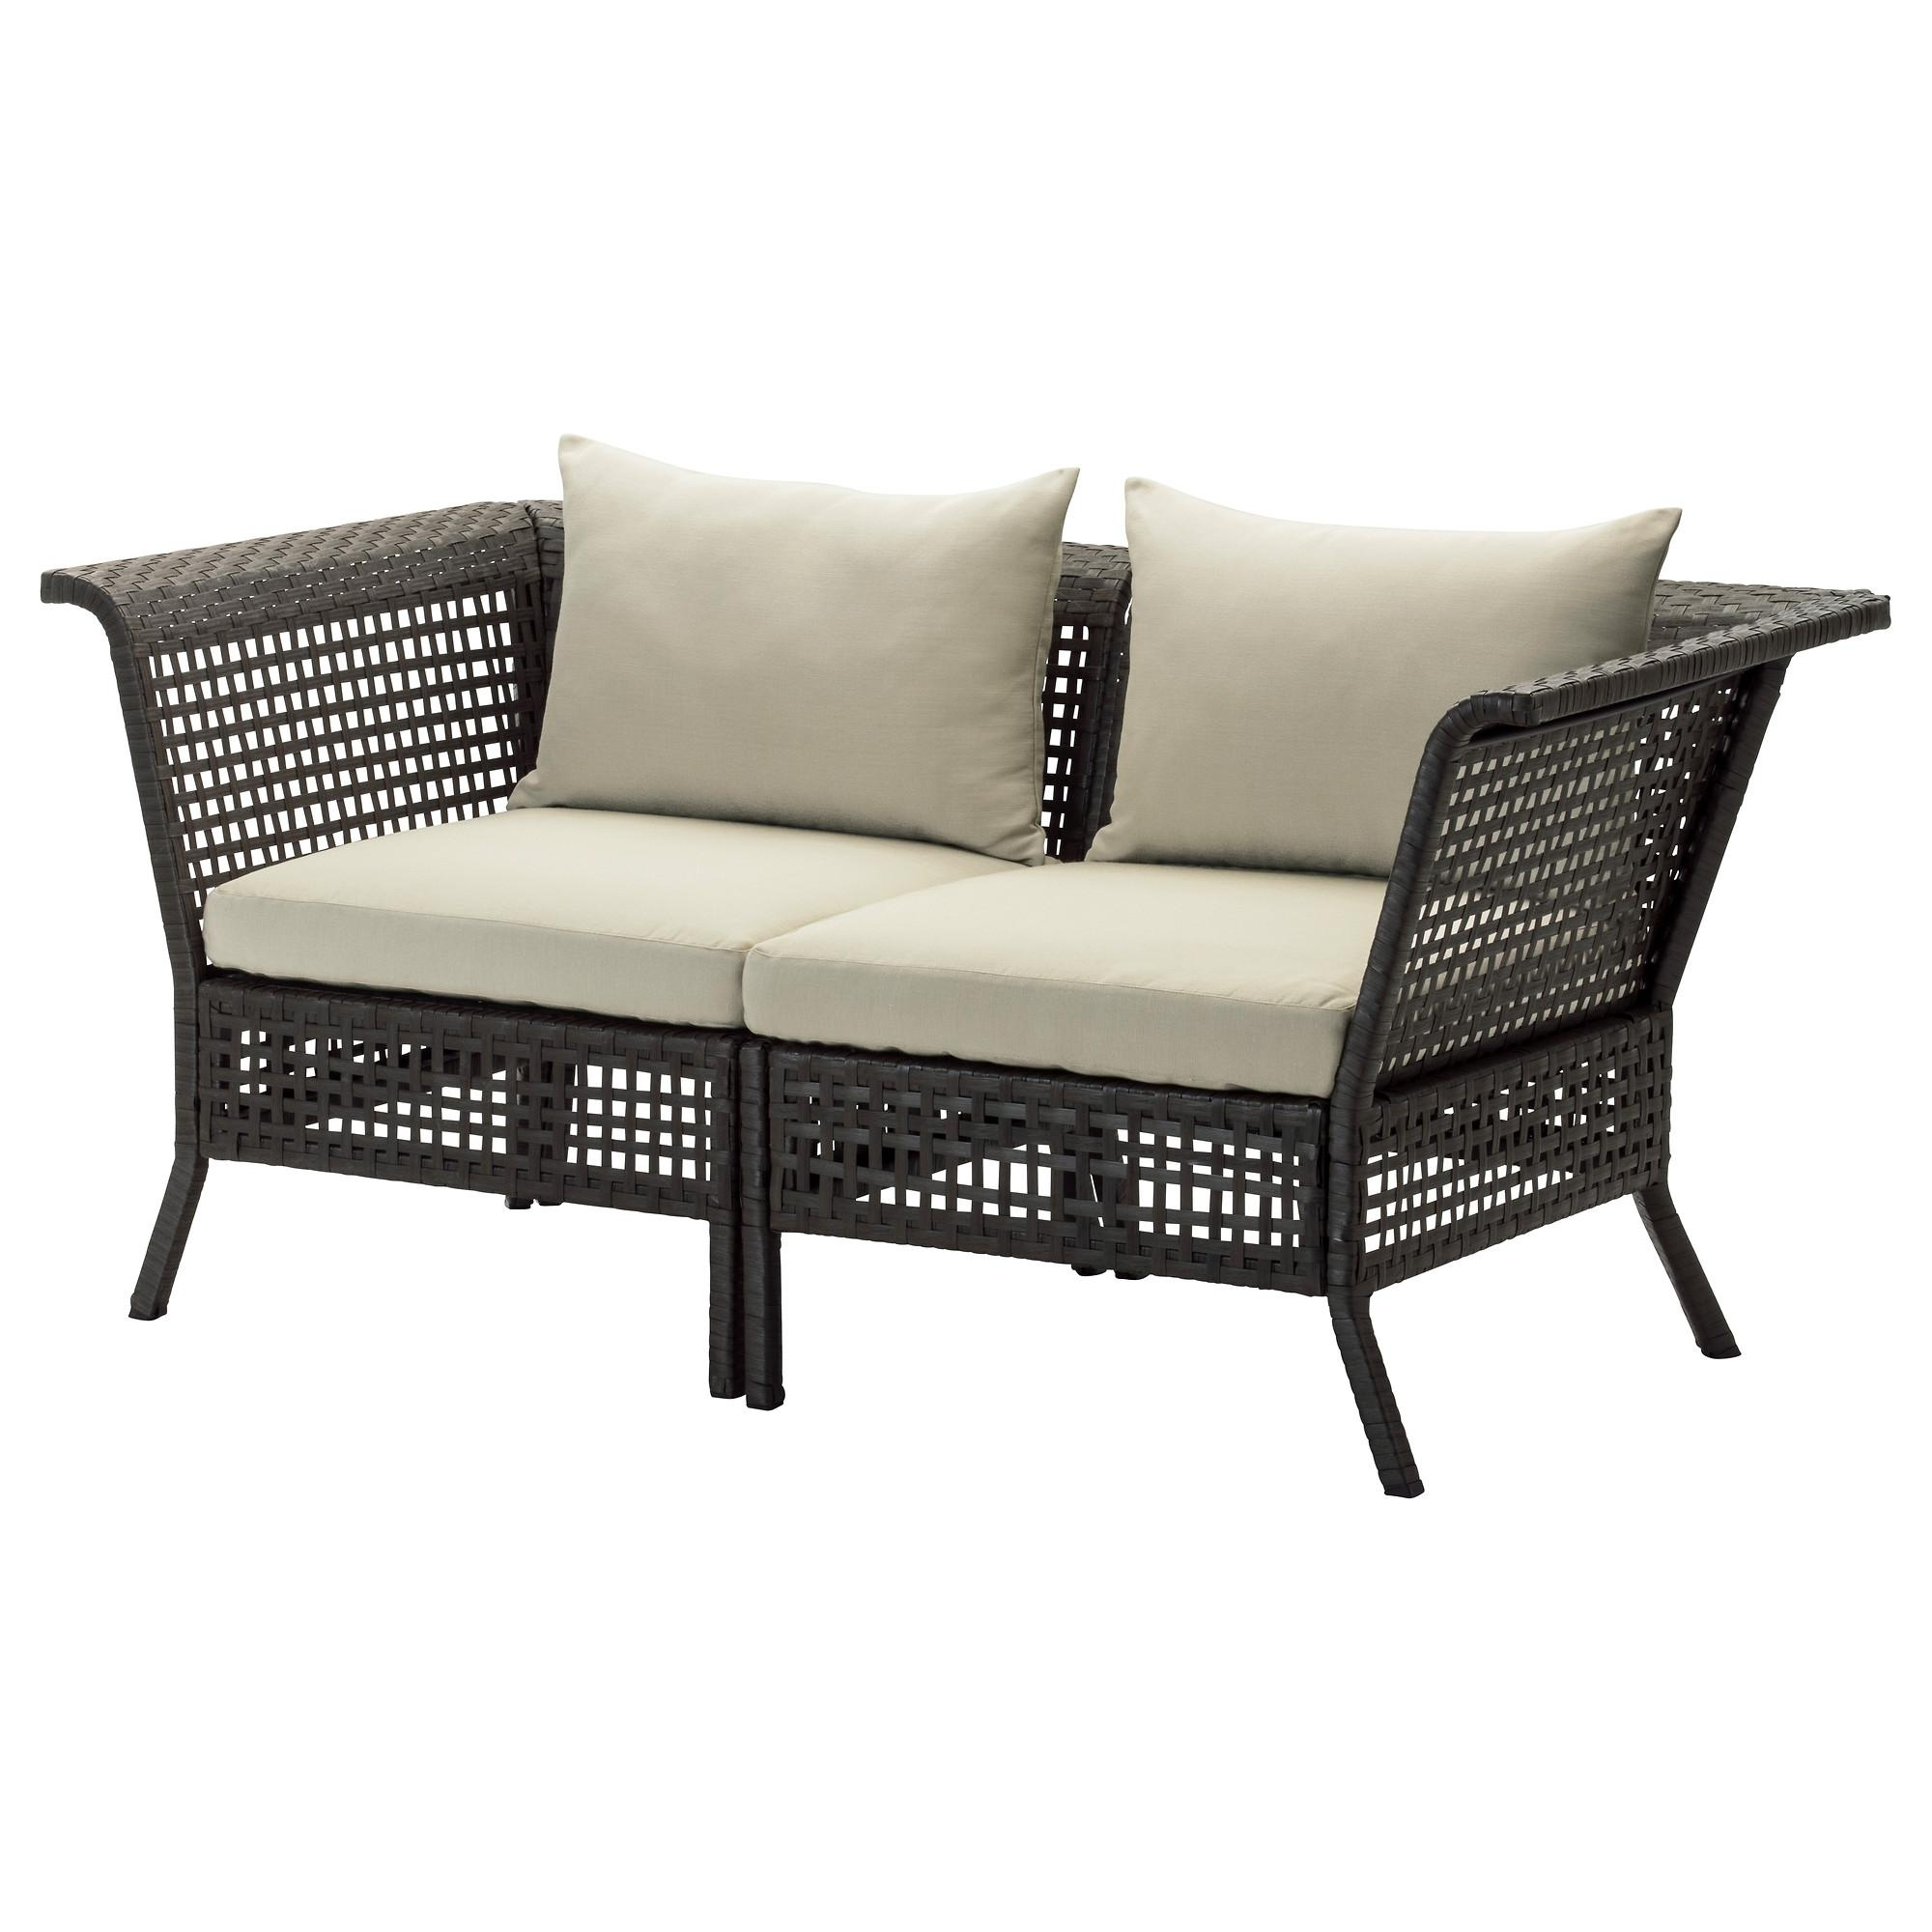 Conservatory Furniture & Garden Sofa Sets | Ikea Within Sofa Chairs Ikea (View 16 of 20)